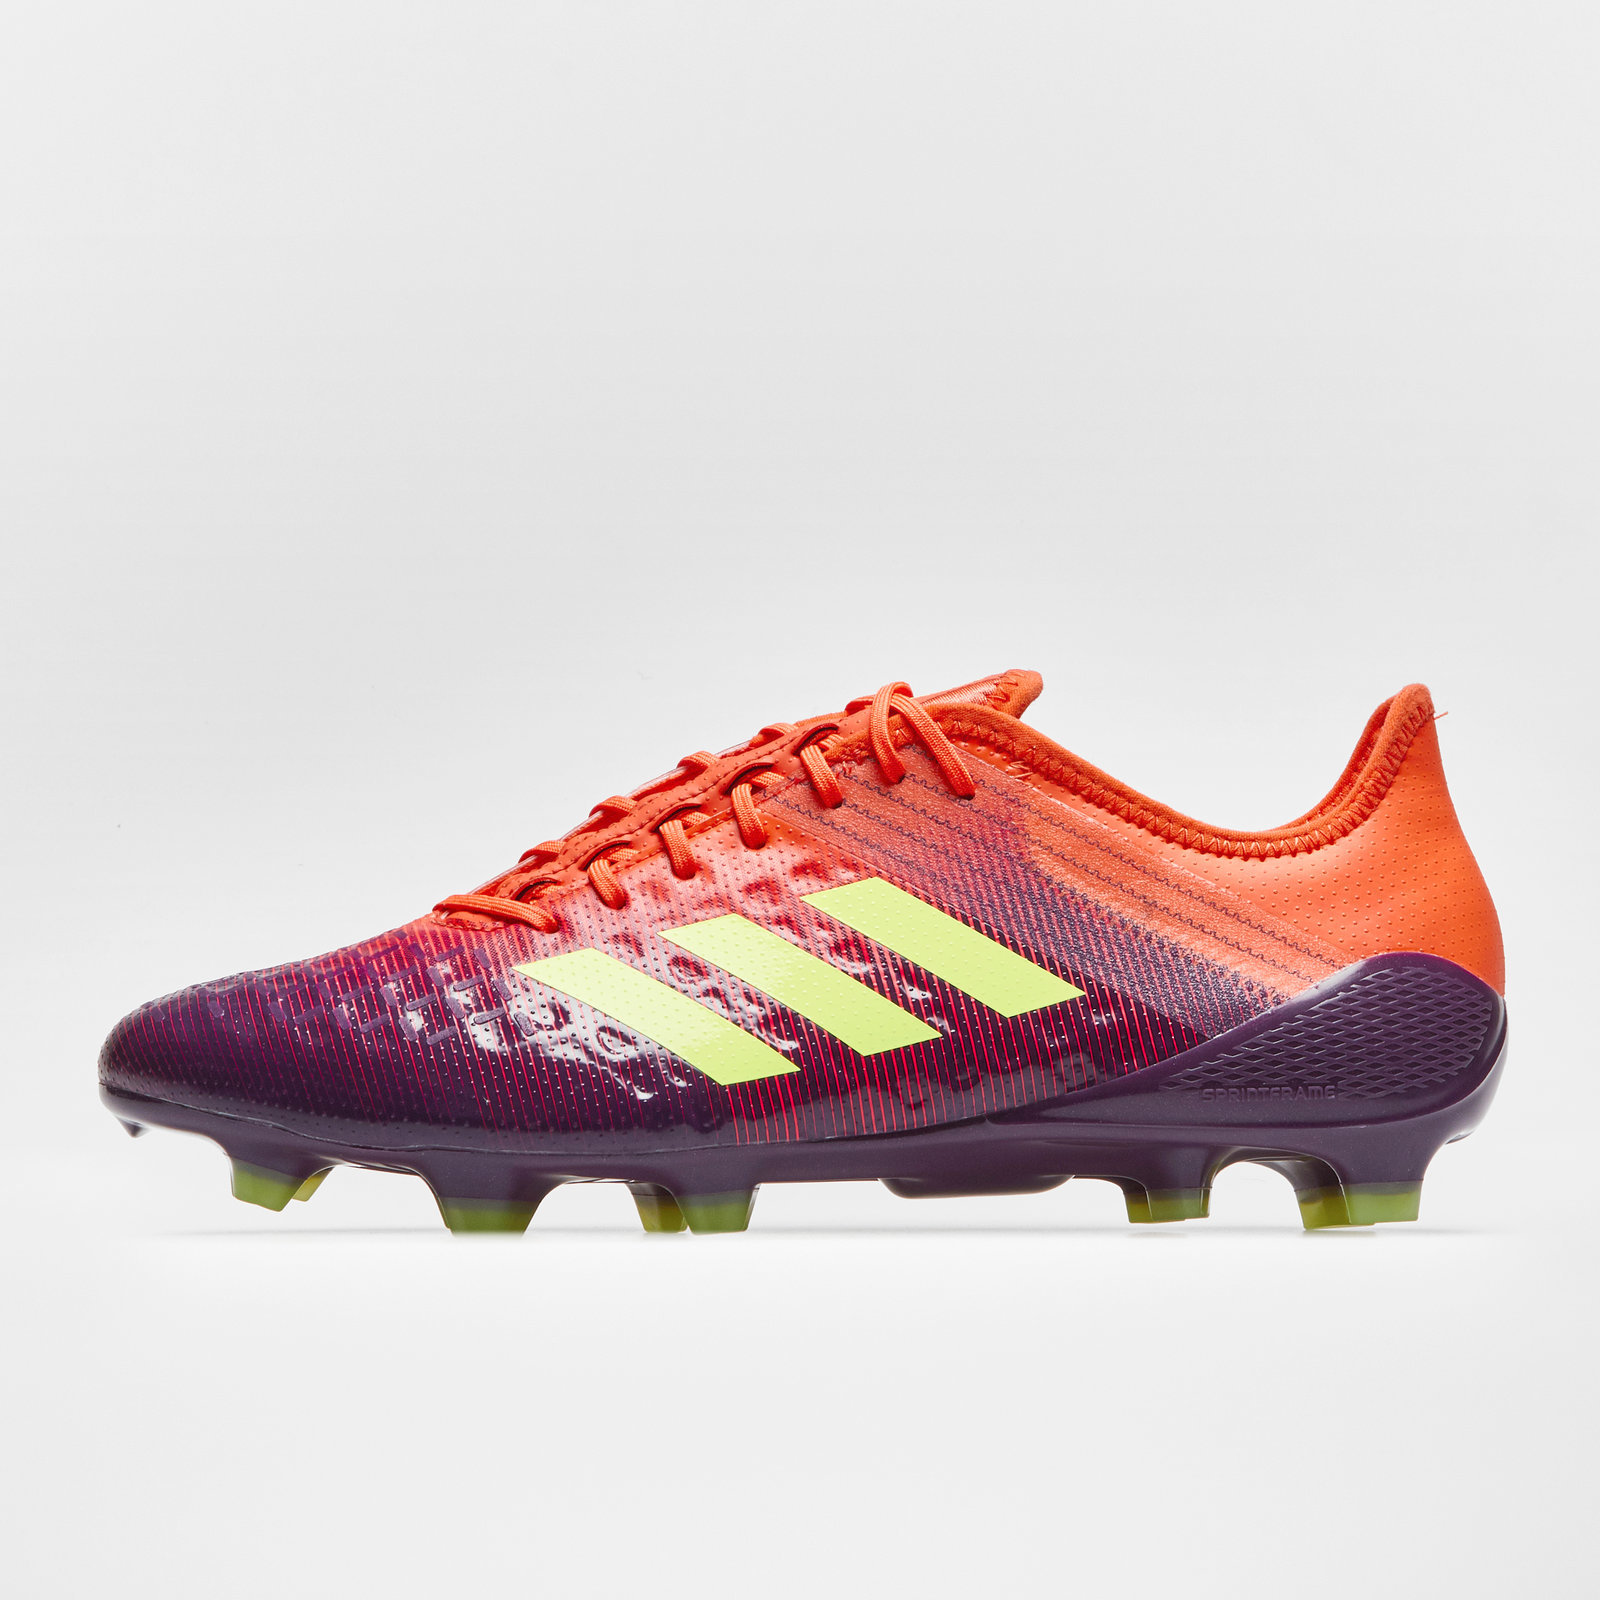 05f3a9007f0 adidas Mens Predator Malice Control Firm Ground Rugby Boots Shoes Studs  Purple